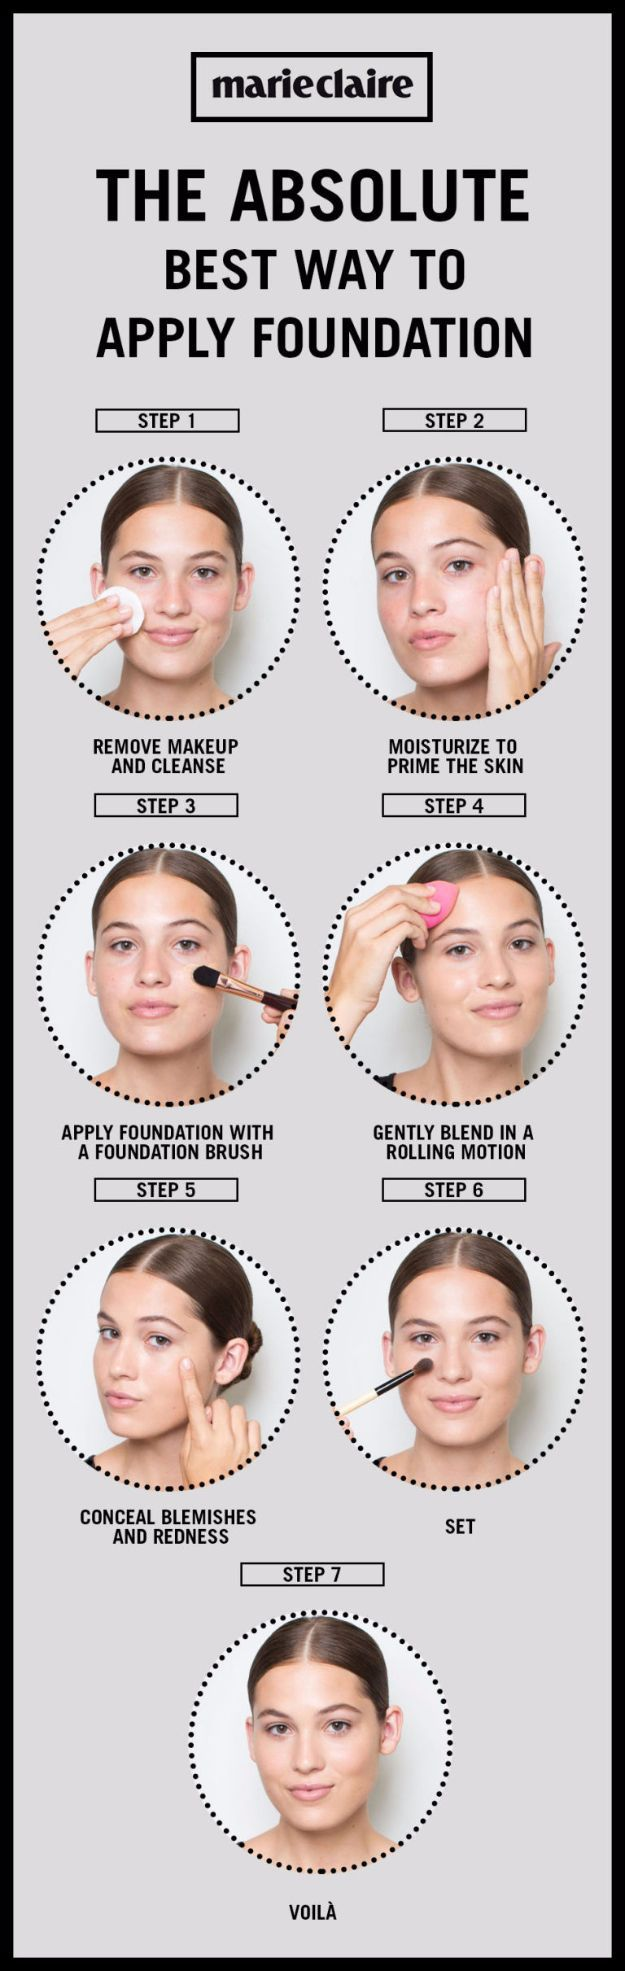 Best Foundation Tutorials - The Absolute Best Way to Apply Foundation- Step By Step Guides For Flawless Natural Skin, Even For Acne and Oily Skin - Check out these Contour Tips and Tricks with Video Guides - All Sorts of Makeup Techniques that Work with Dark Skin or Pale Skin - thegoddess.com/best-foundation-tutorials